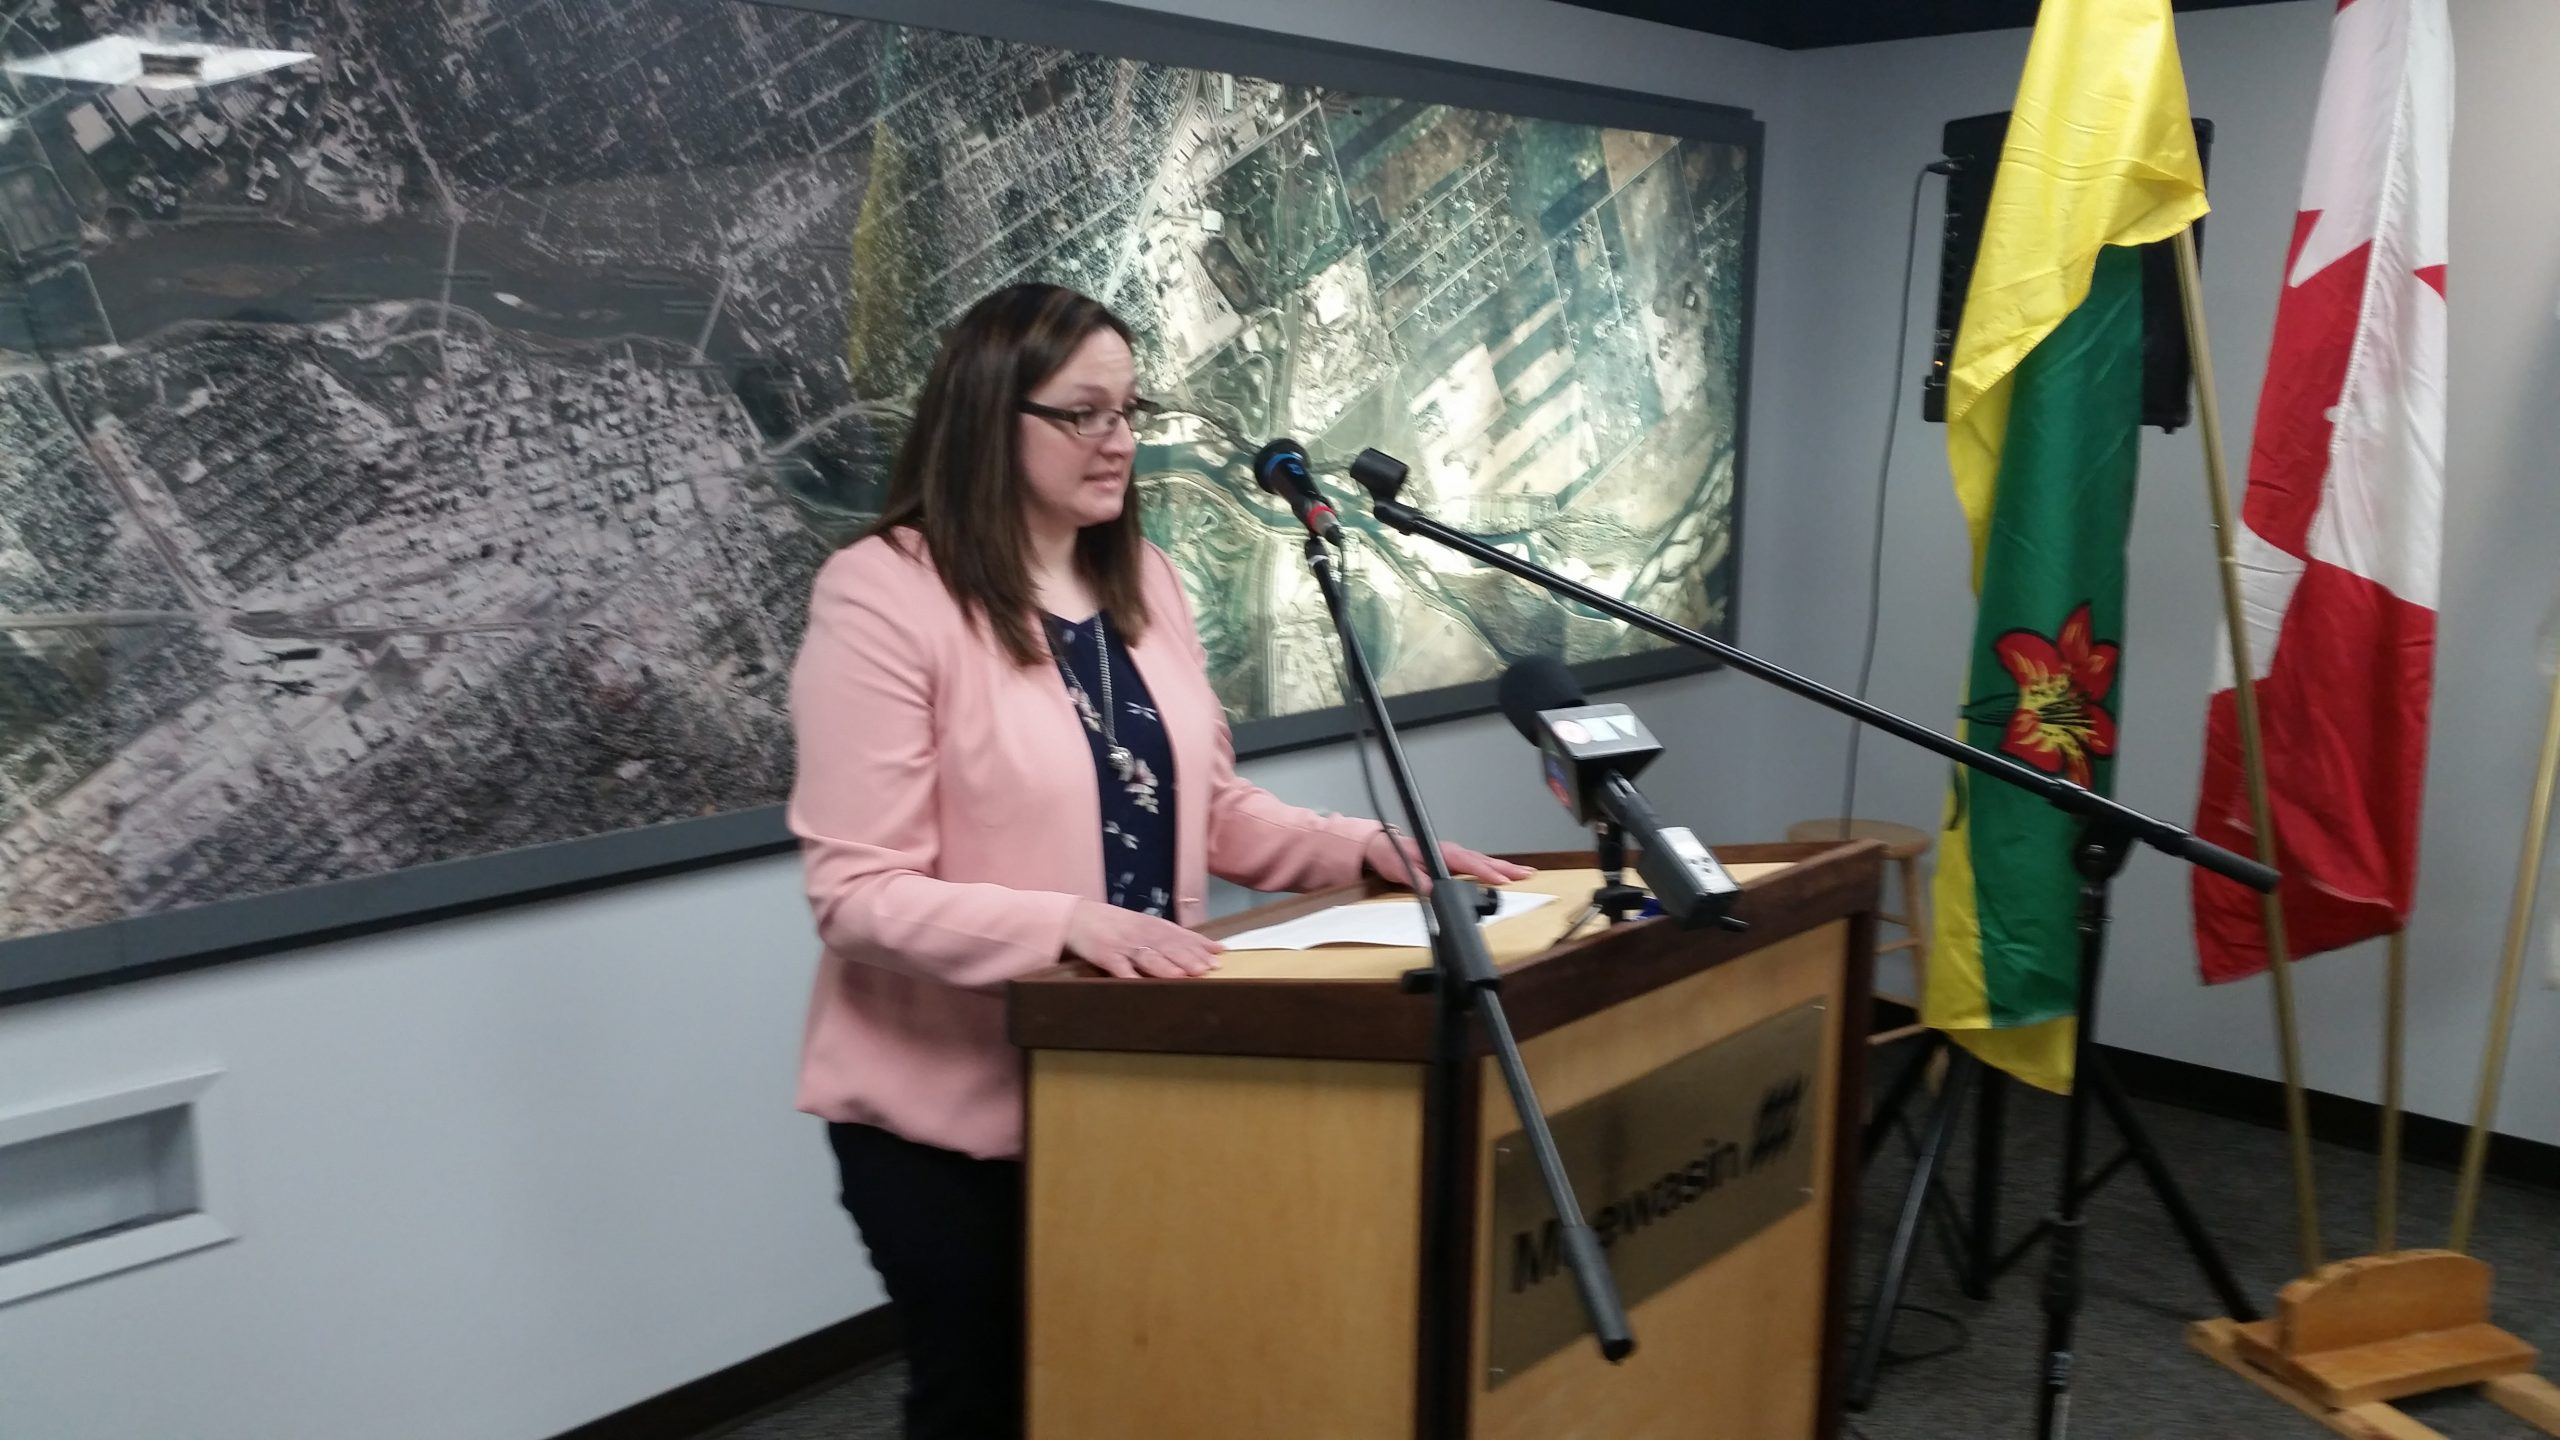 Meewasin Valley Authority Hires New CEO